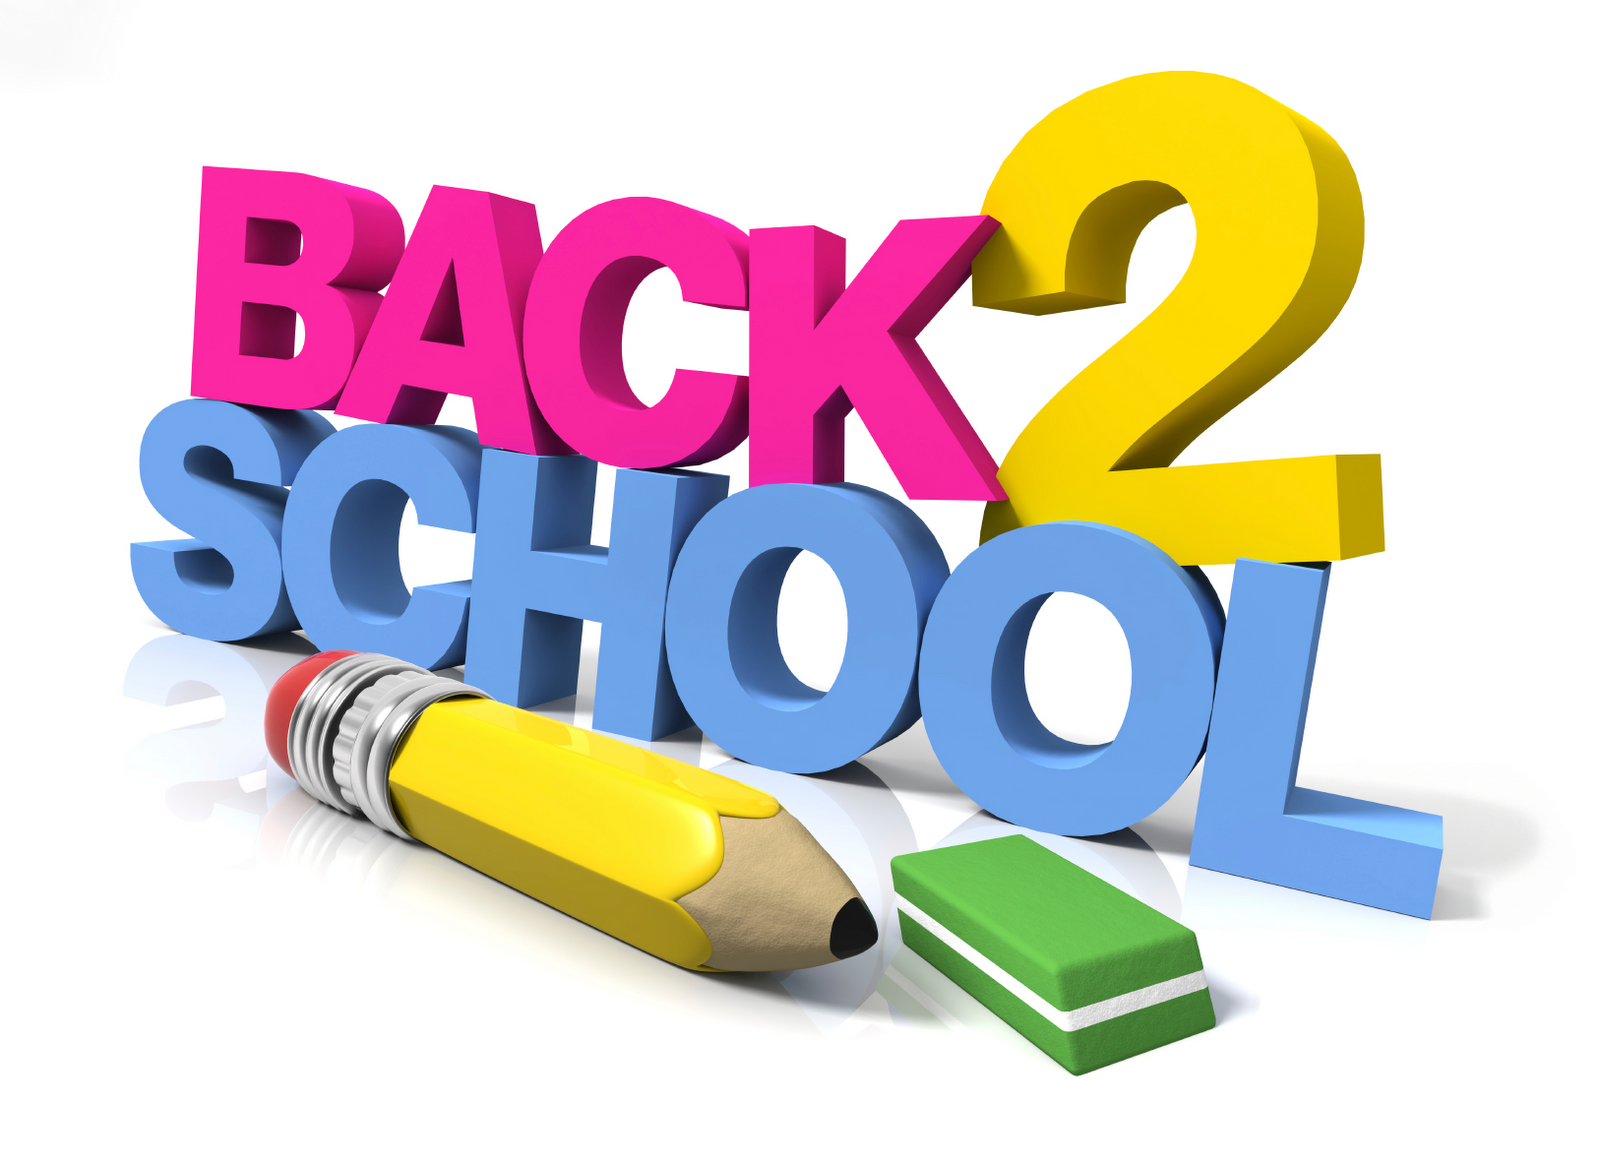 Back To School Image PNG Transparent